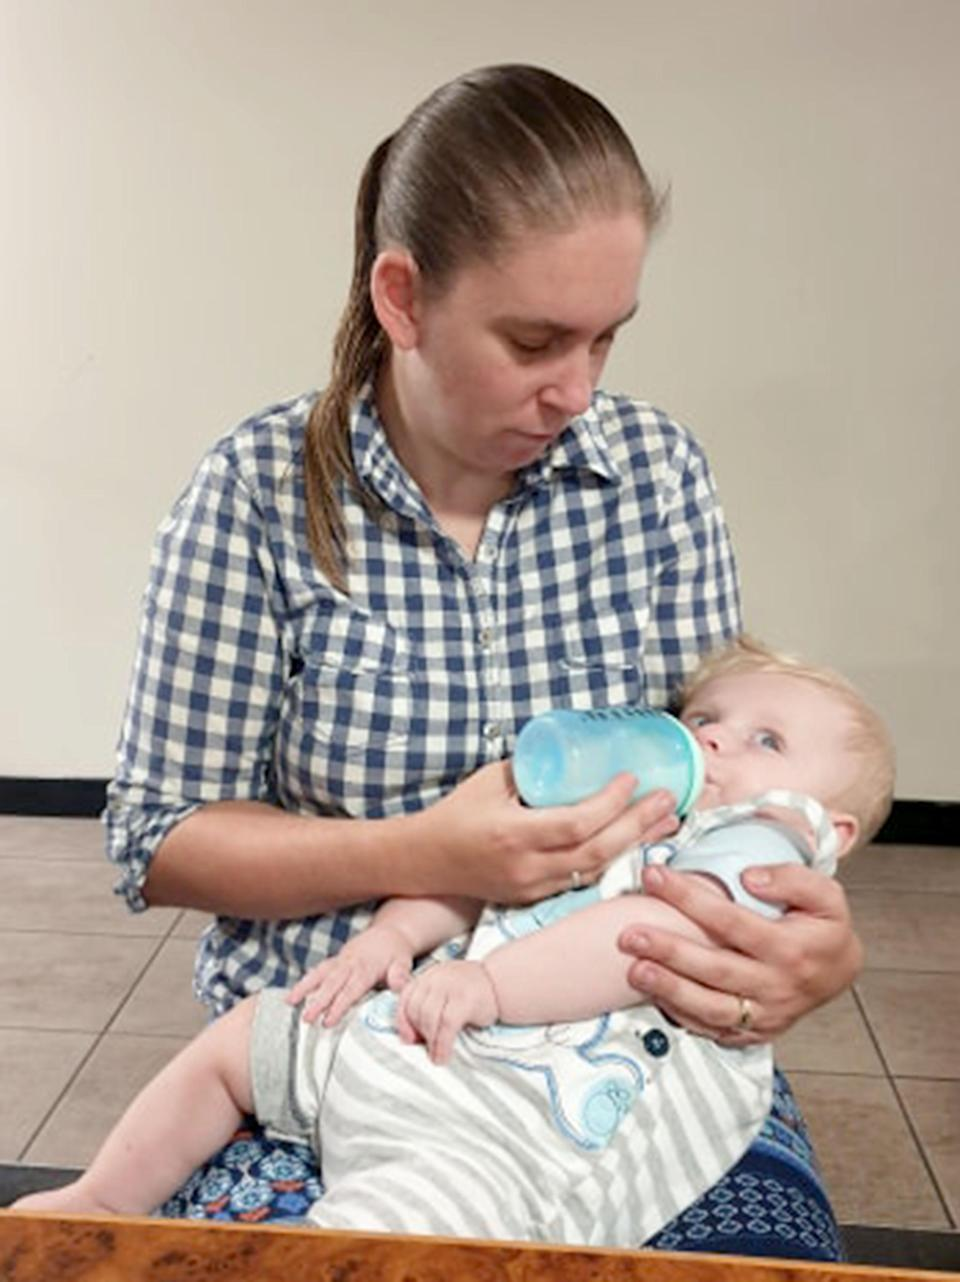 Joanne Campbell feeds her son Hayden with the help of other mums online Photo: Caters